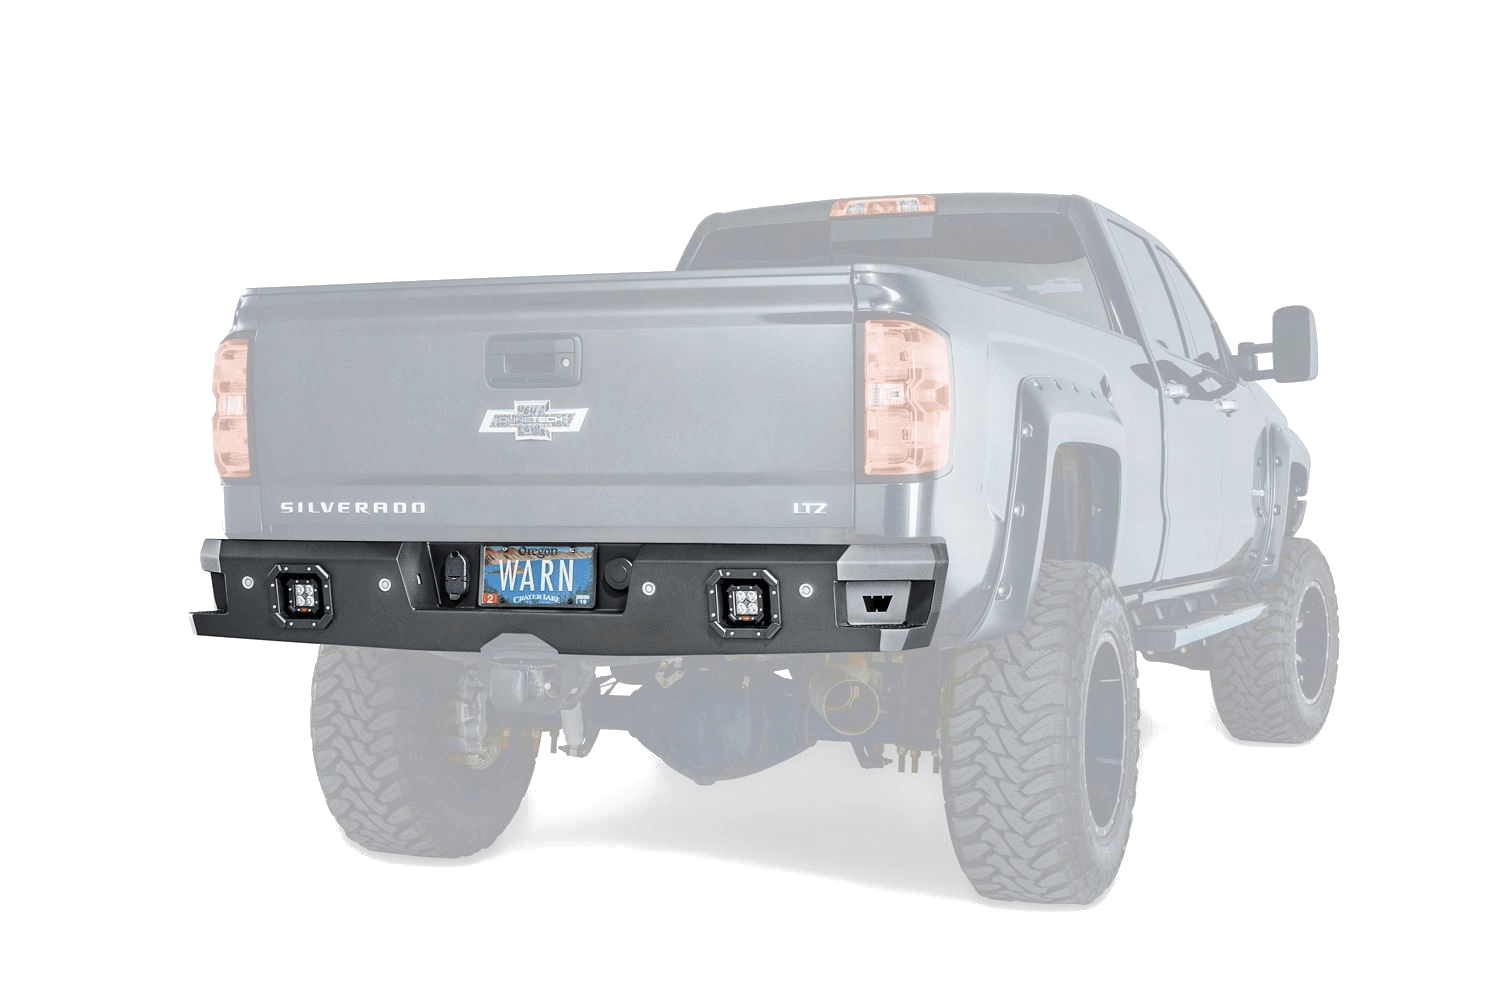 warn truck & suv bumpers chevy silverado ascent rear bumper 96550 warn industries bumpers